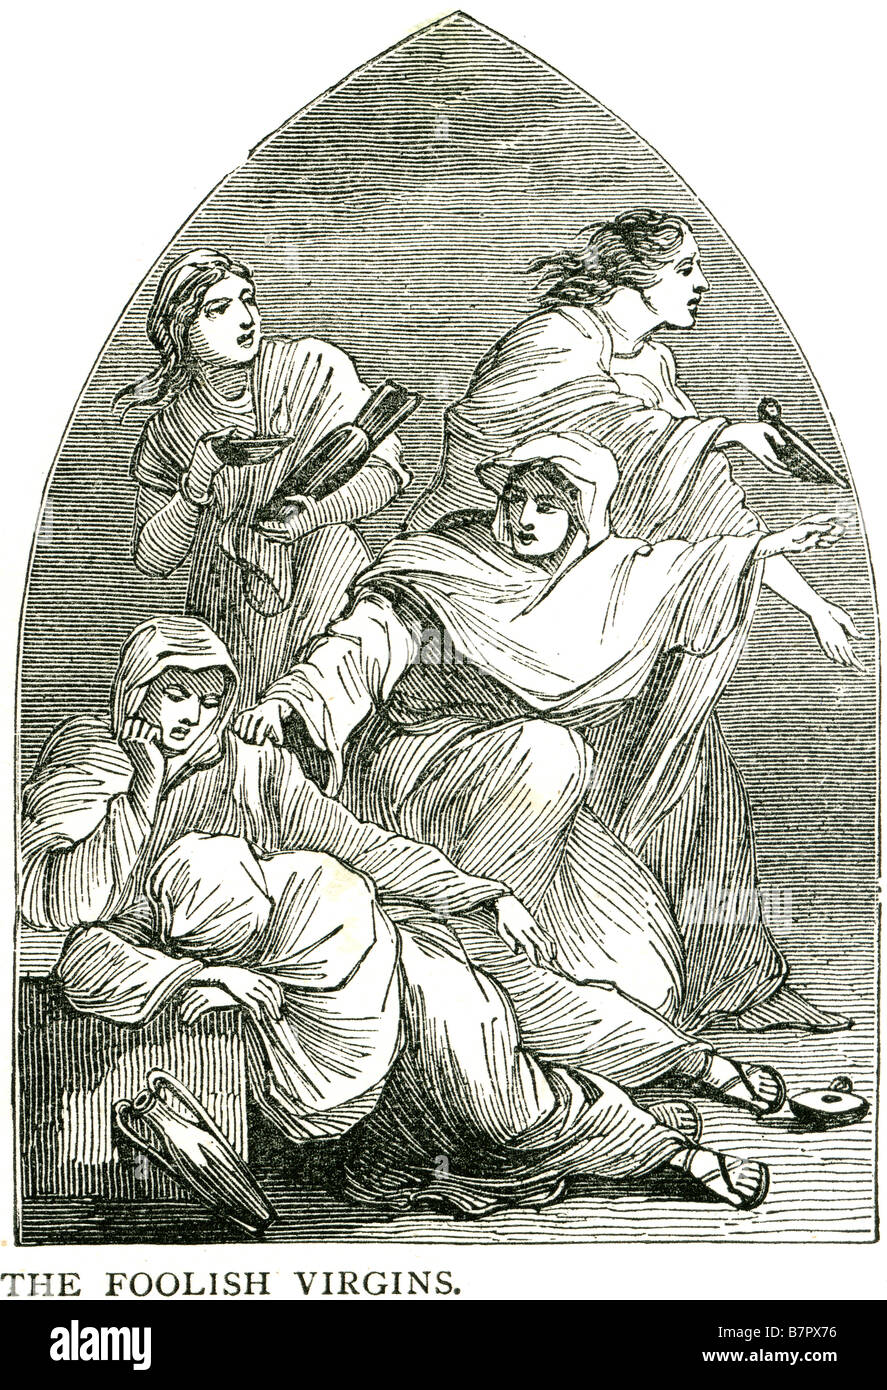 the foolish virgins The Parable of the Ten Virgins , or the Wise and Foolish Virgins, is a parable told by Jesus - Stock Image